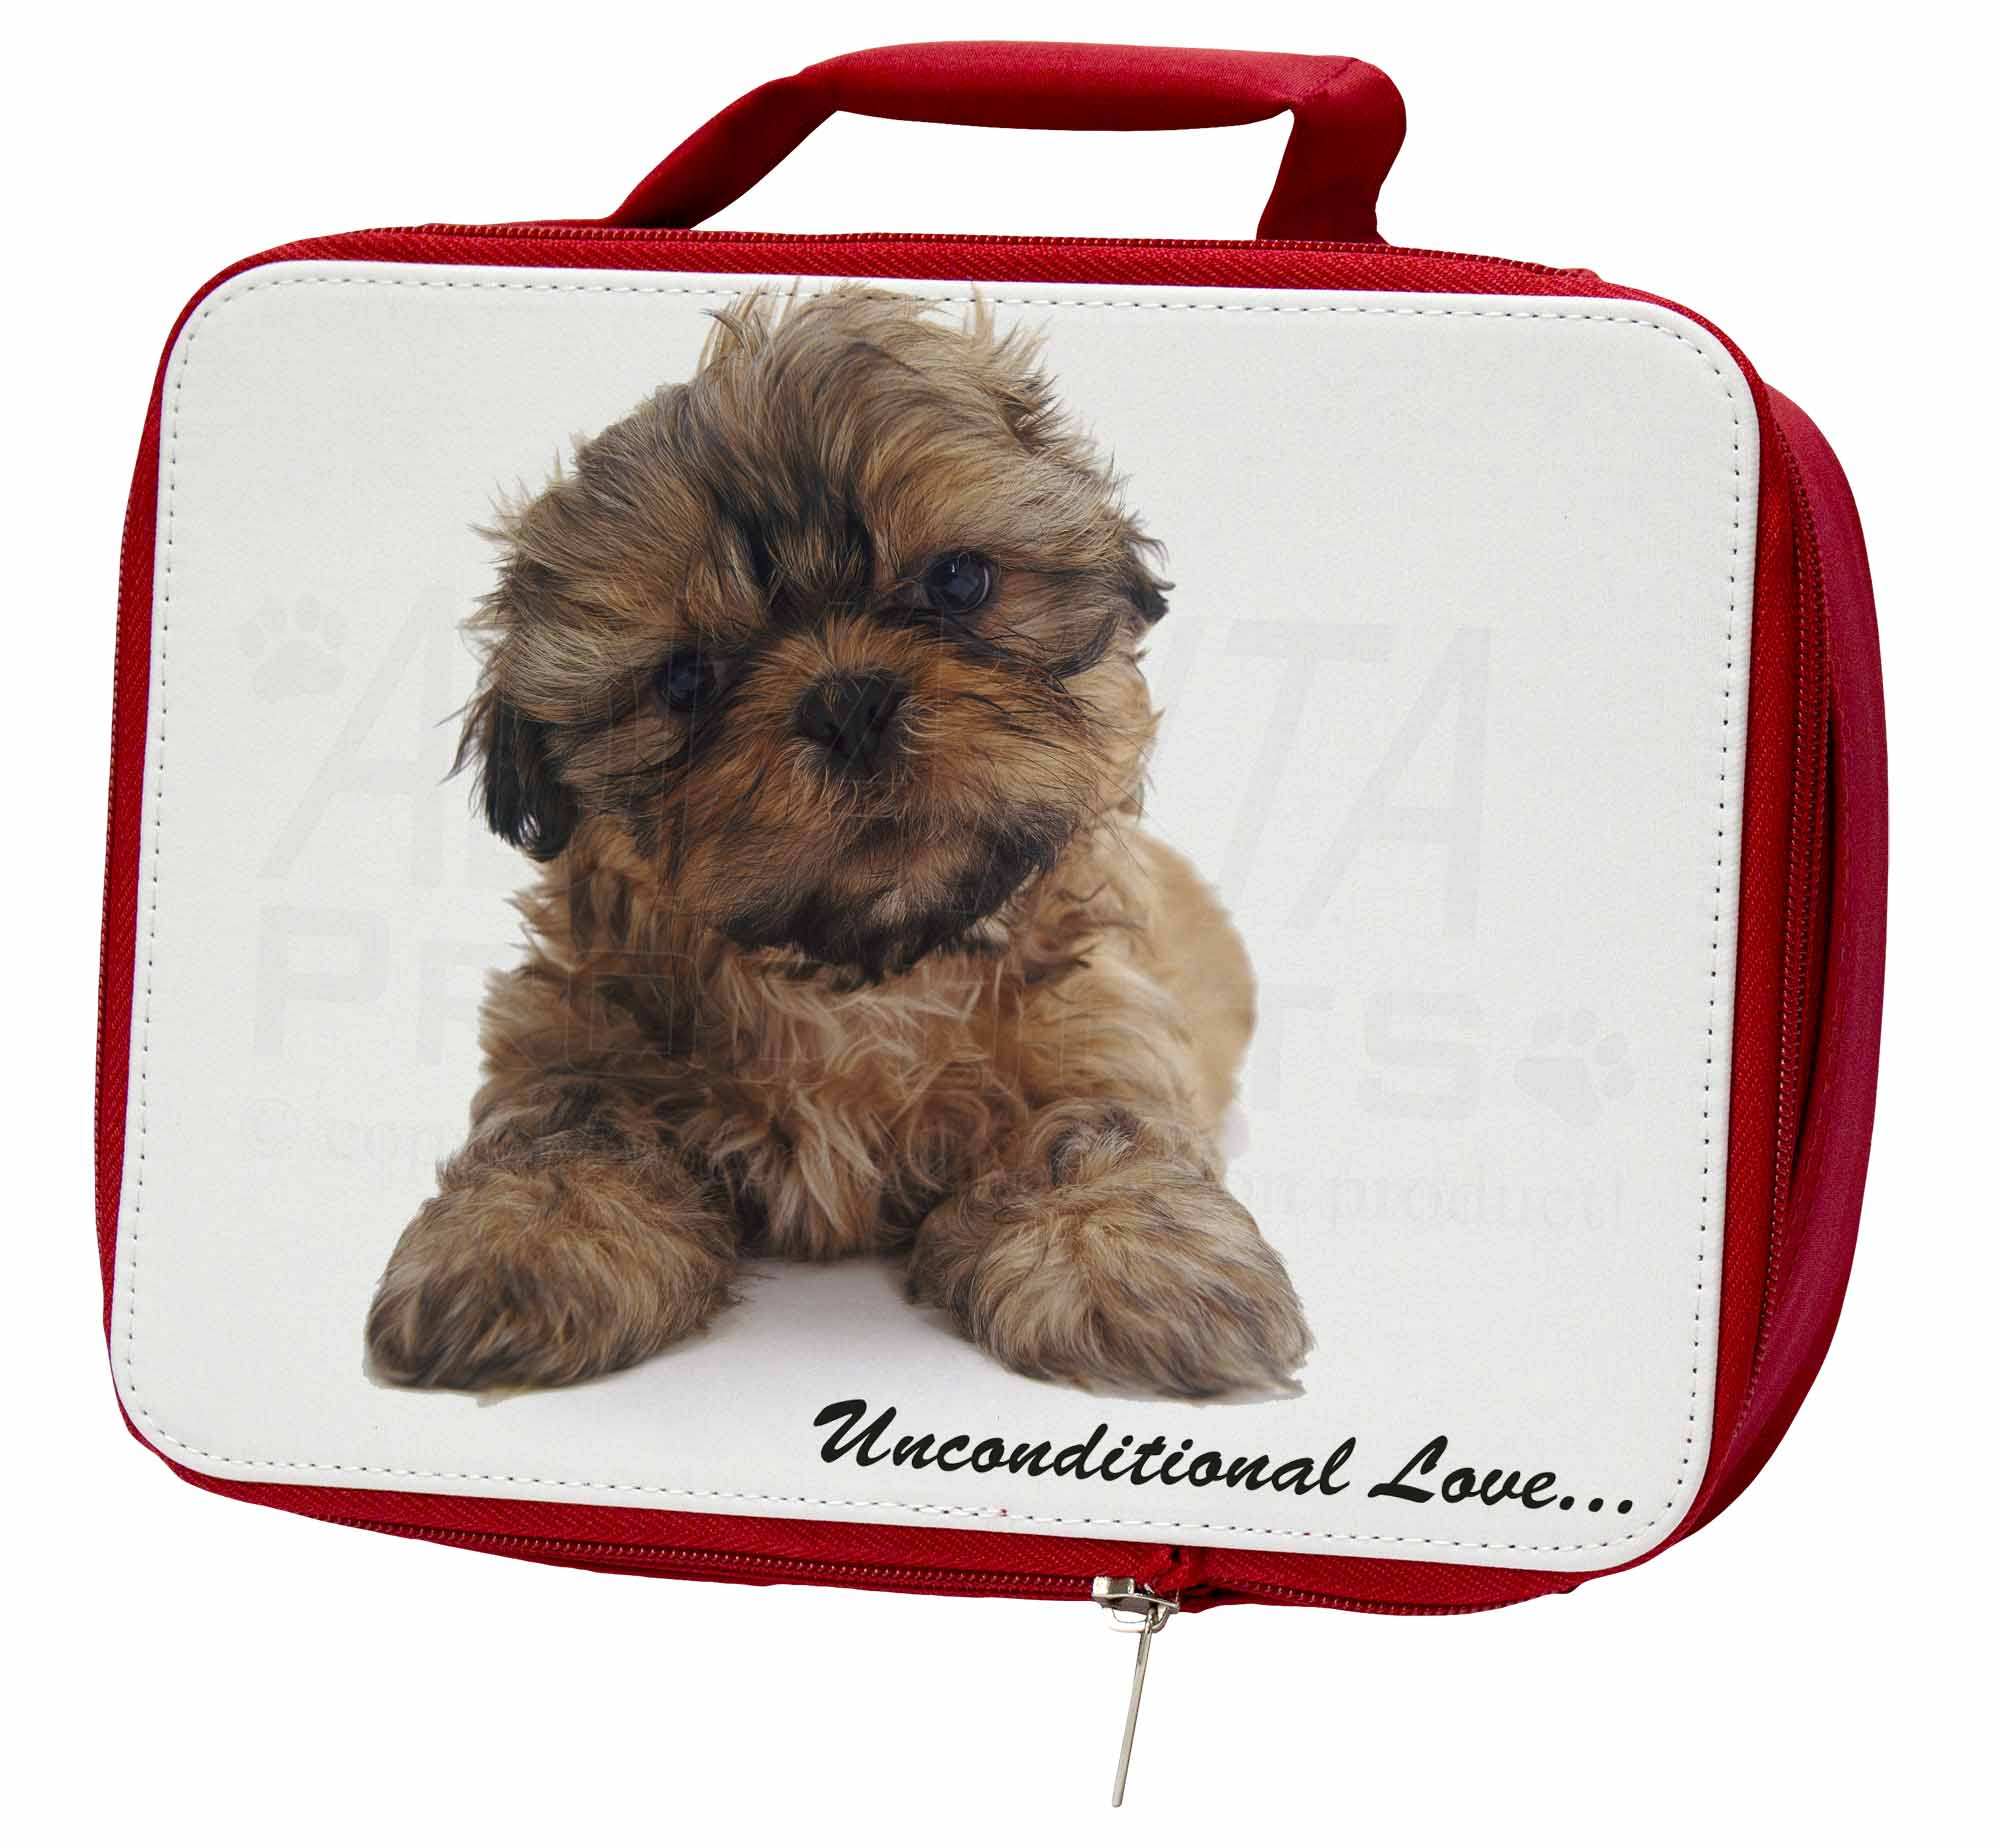 Shih-Tzu Dog-Love Insulated Red Bag, School Lunch Box/Picnic Bag, Red AD-SZ4uLBR 7c9ee3